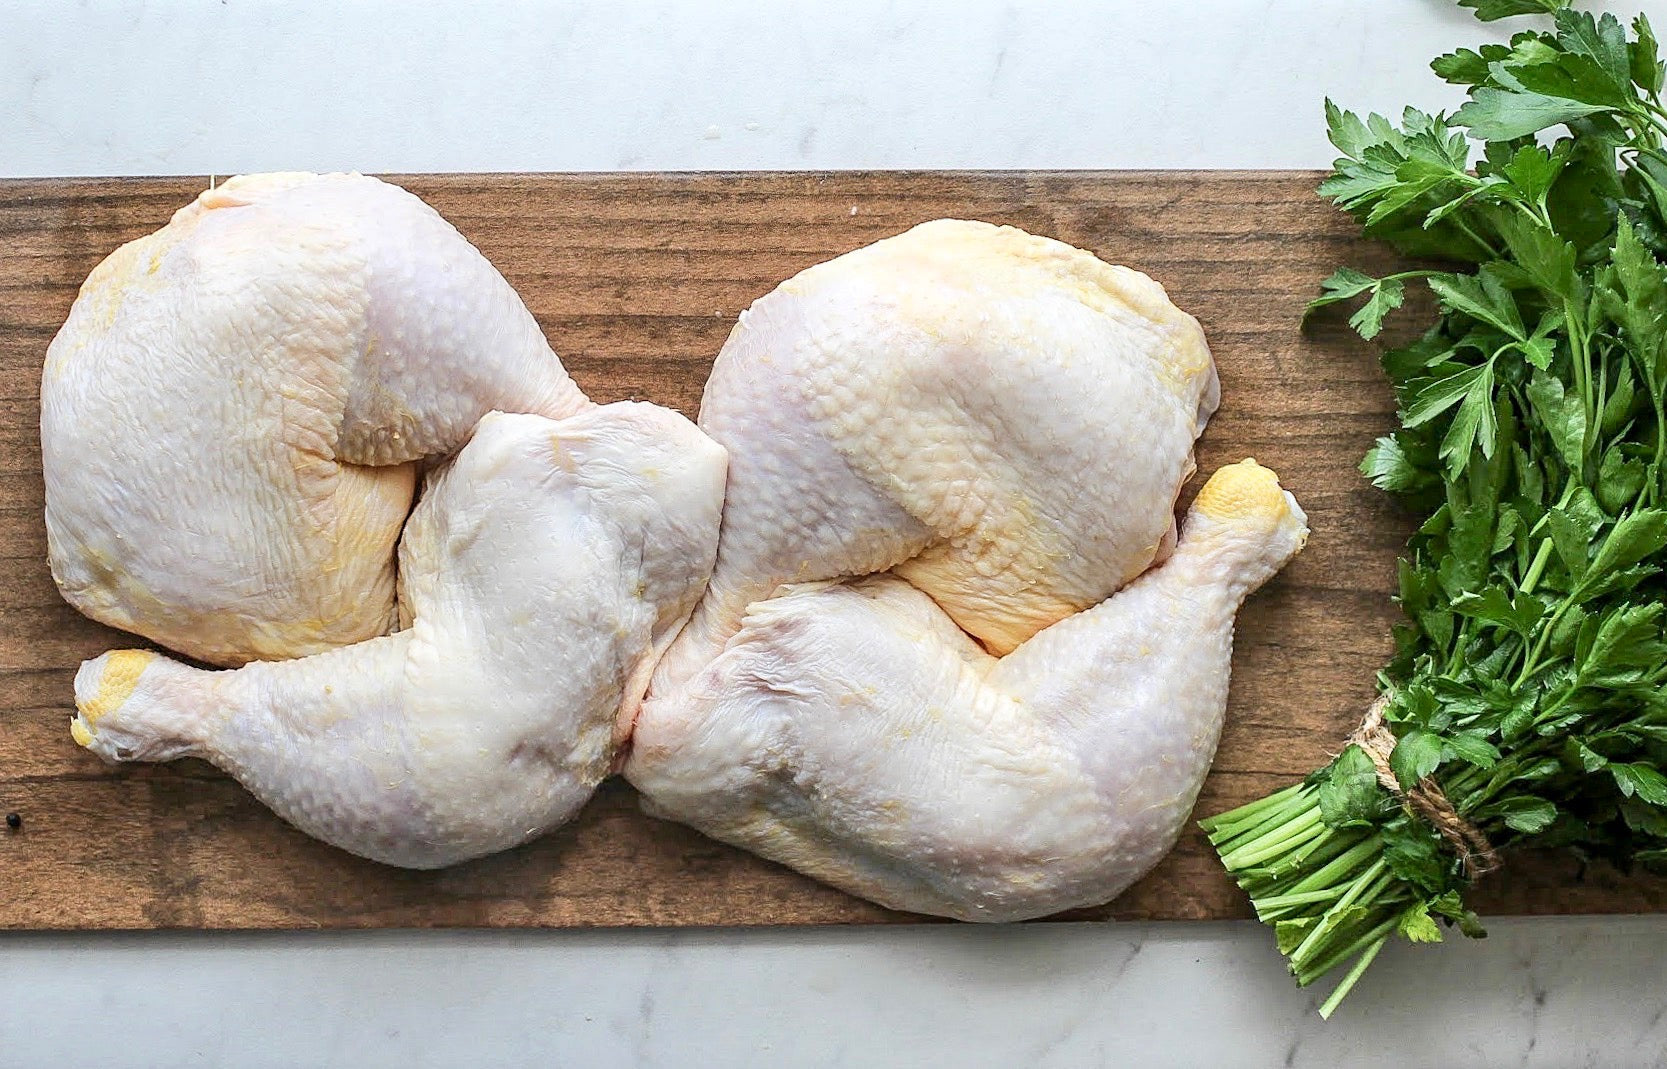 Alabama Organic Pastured Chicken Legs and Thighs. NON-GMO, NO Antibiotic, Soy Free Chicken